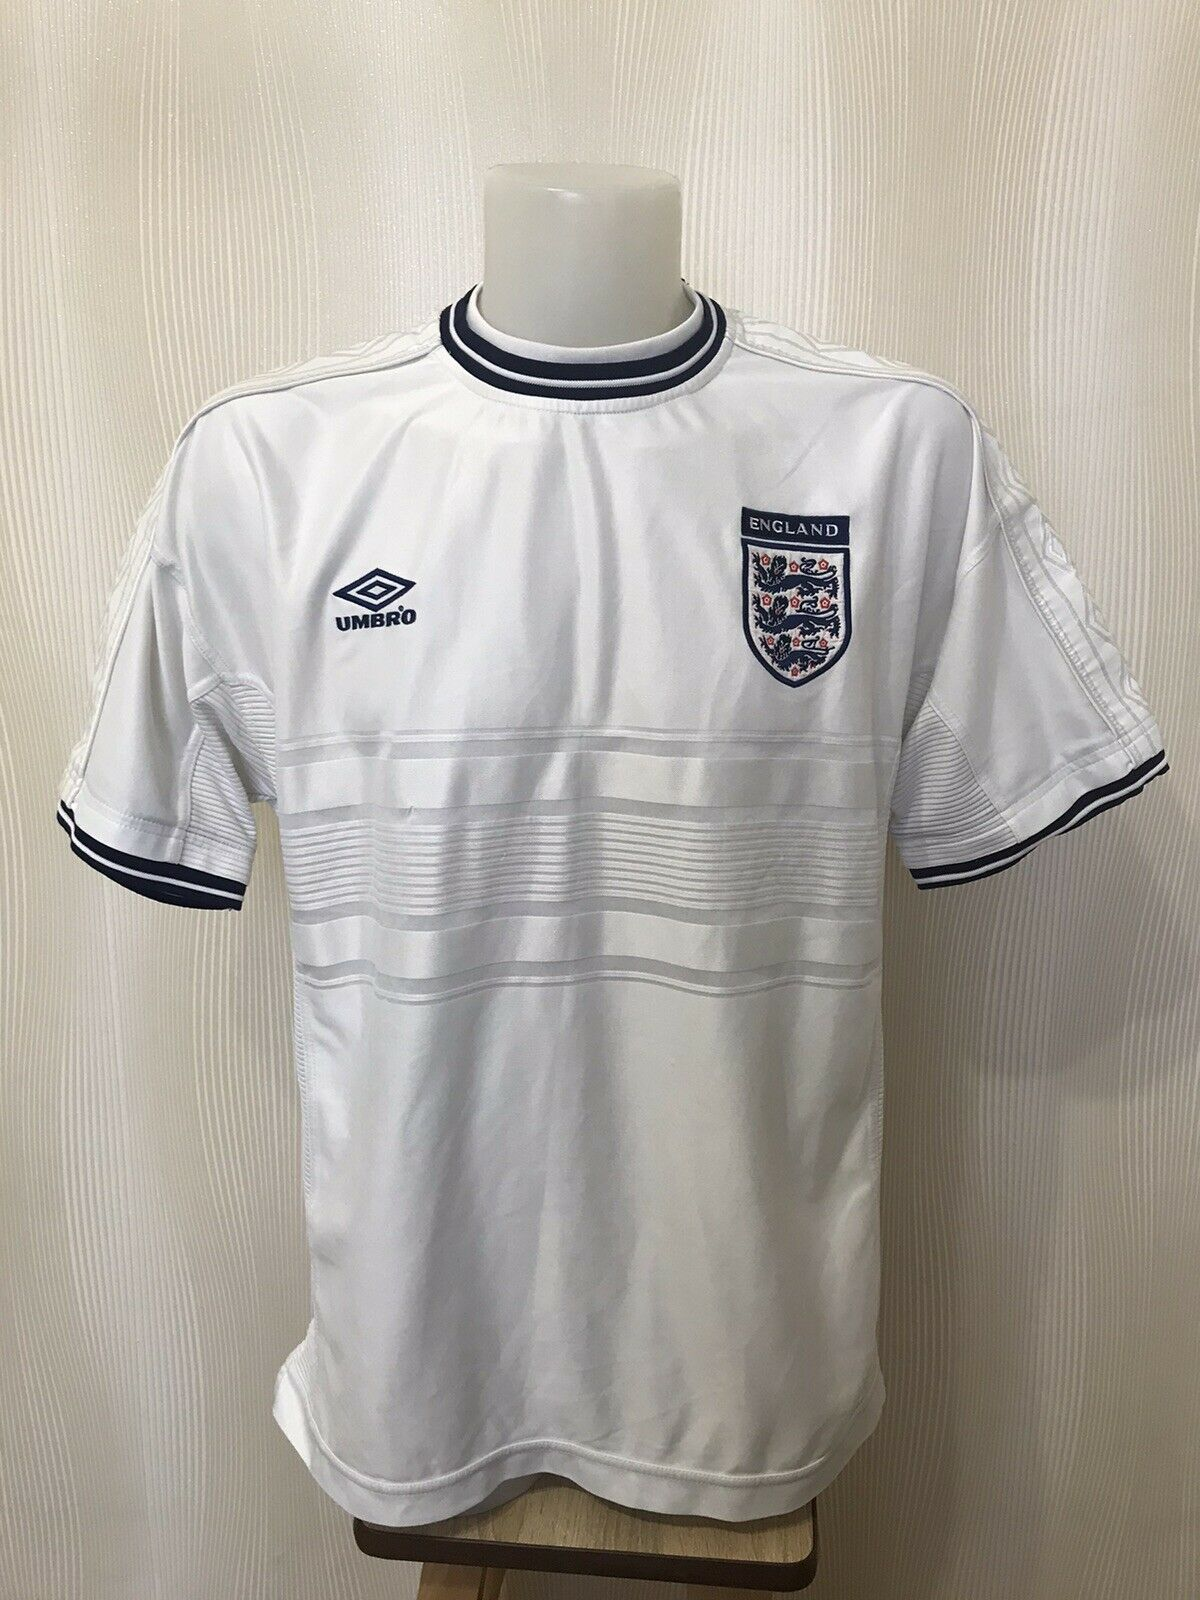 England national team 1999/2000/2001 home Size XL Umbro jersey